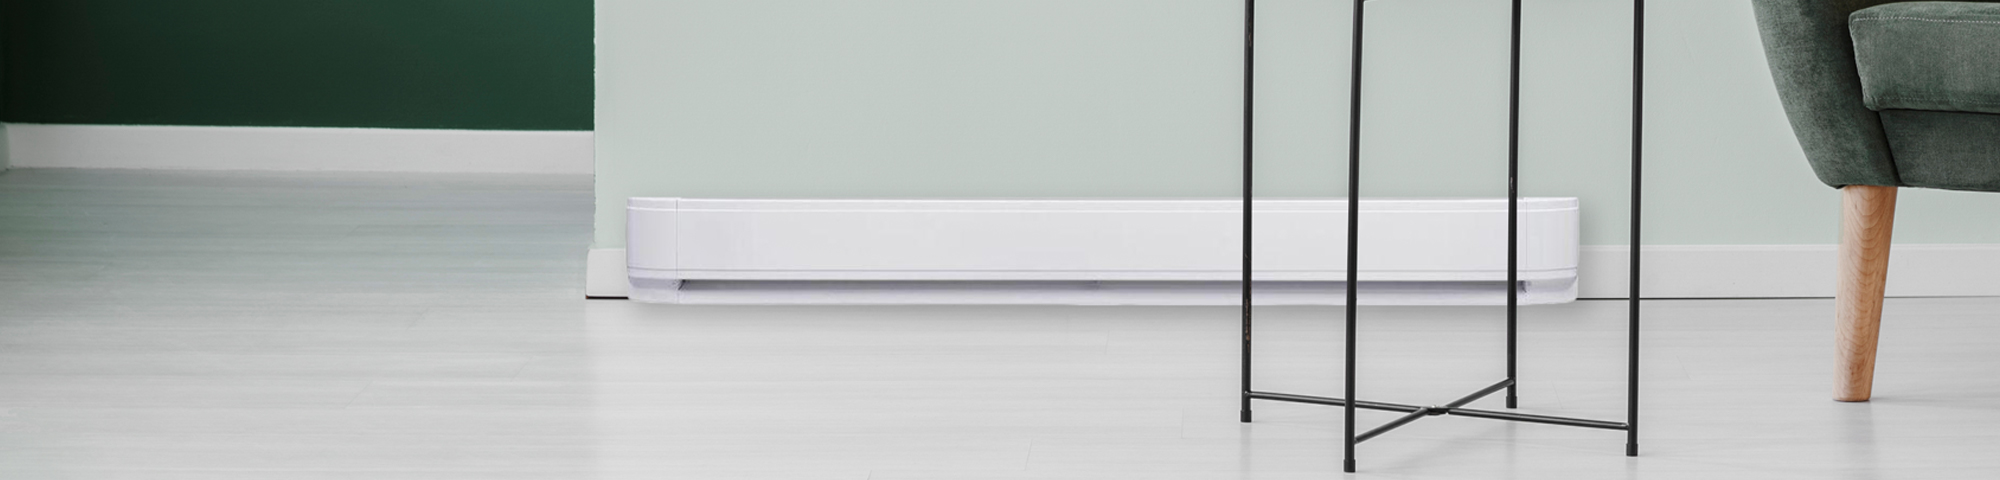 hight resolution of best baseboard heaters 2019 electric hydronic baseboard heaters top ten reviews